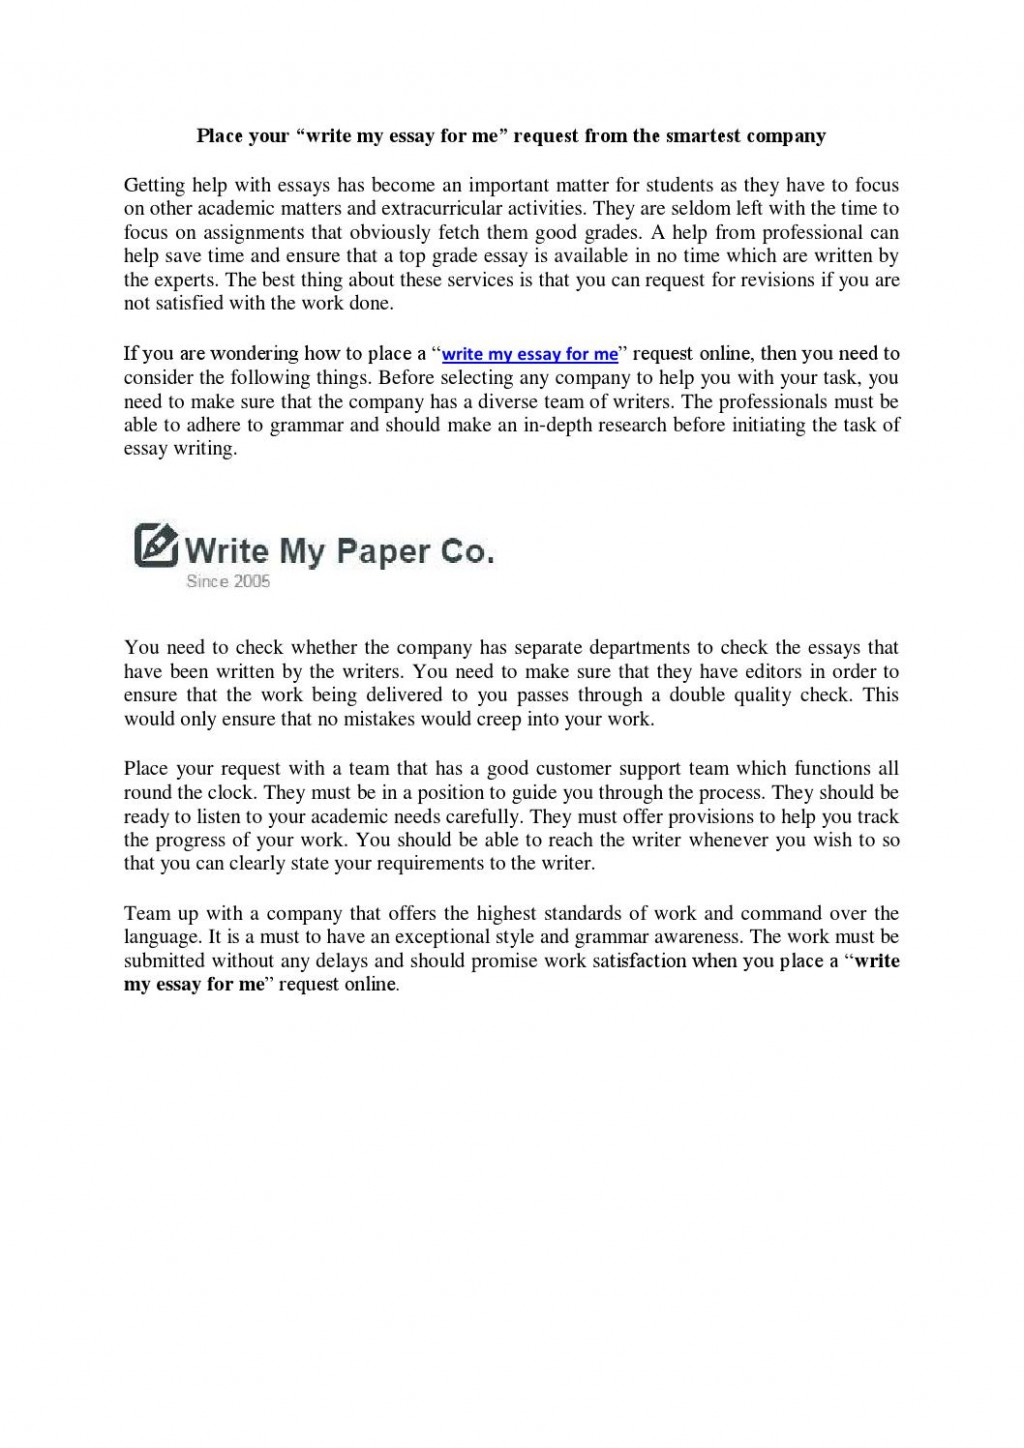 027 Do My Essay For Me Example Page 1 Impressive Write Please Free Online Custom Cheap Large